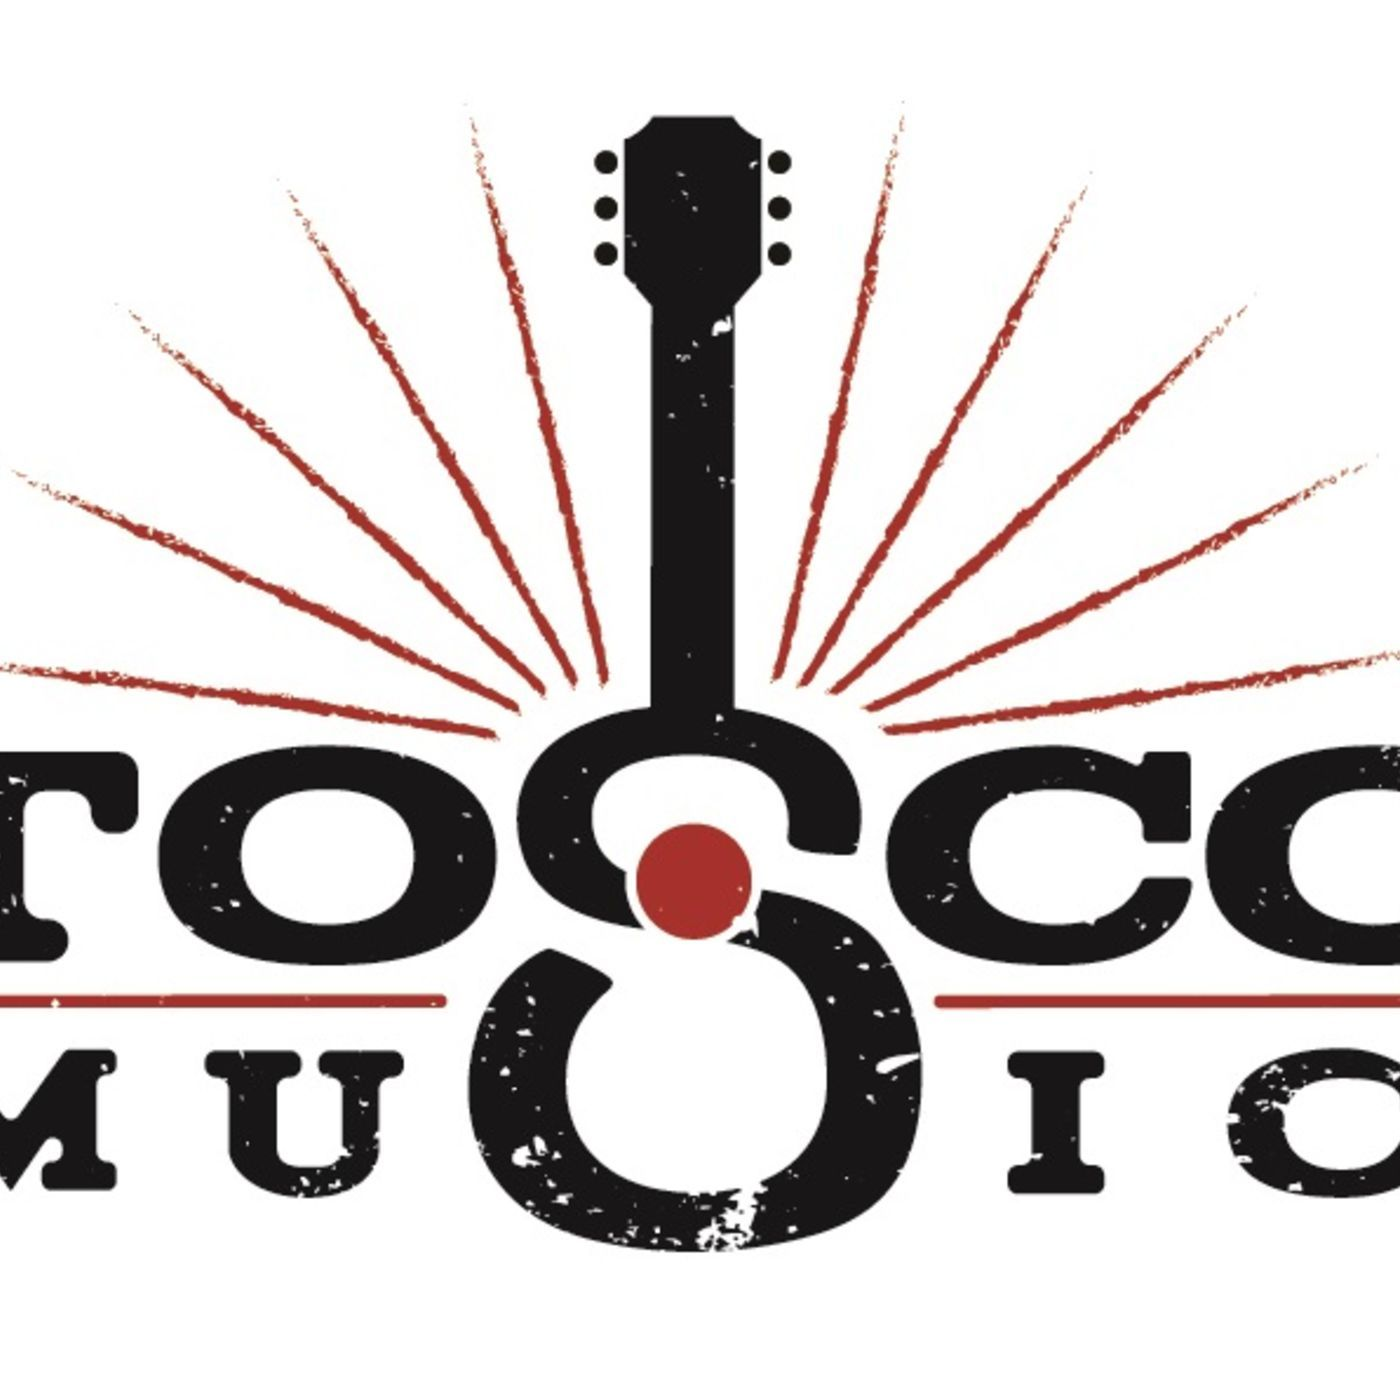 Tosco Music Party Podcast | Listen via Stitcher for Podcasts